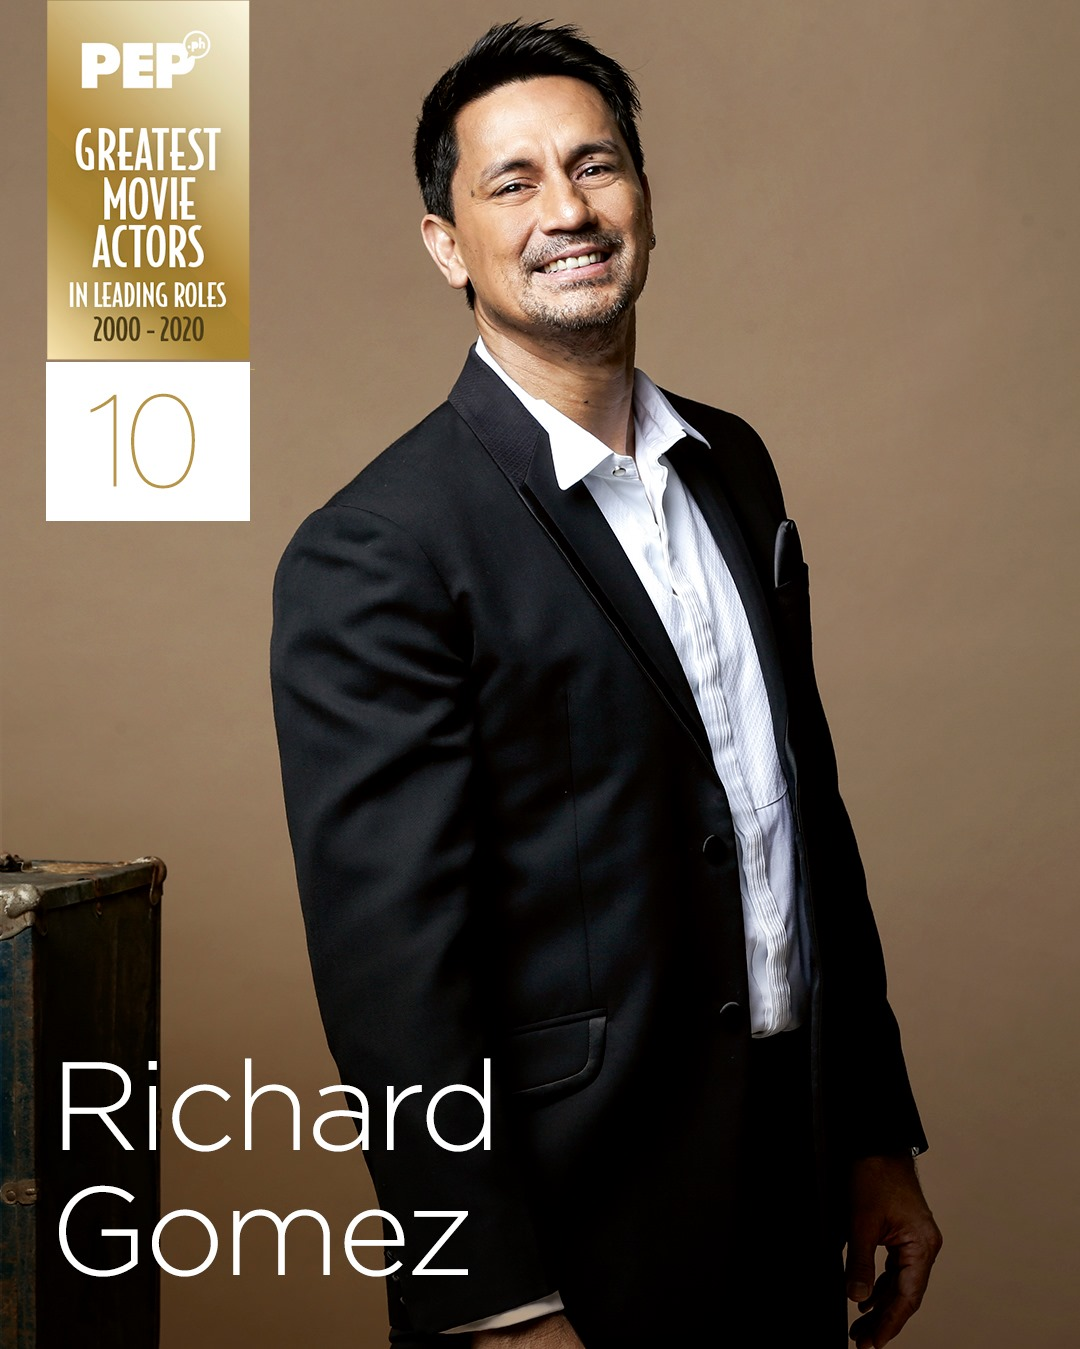 Richard Gomez, 15 Greatest Movie Actors in Leading Roles